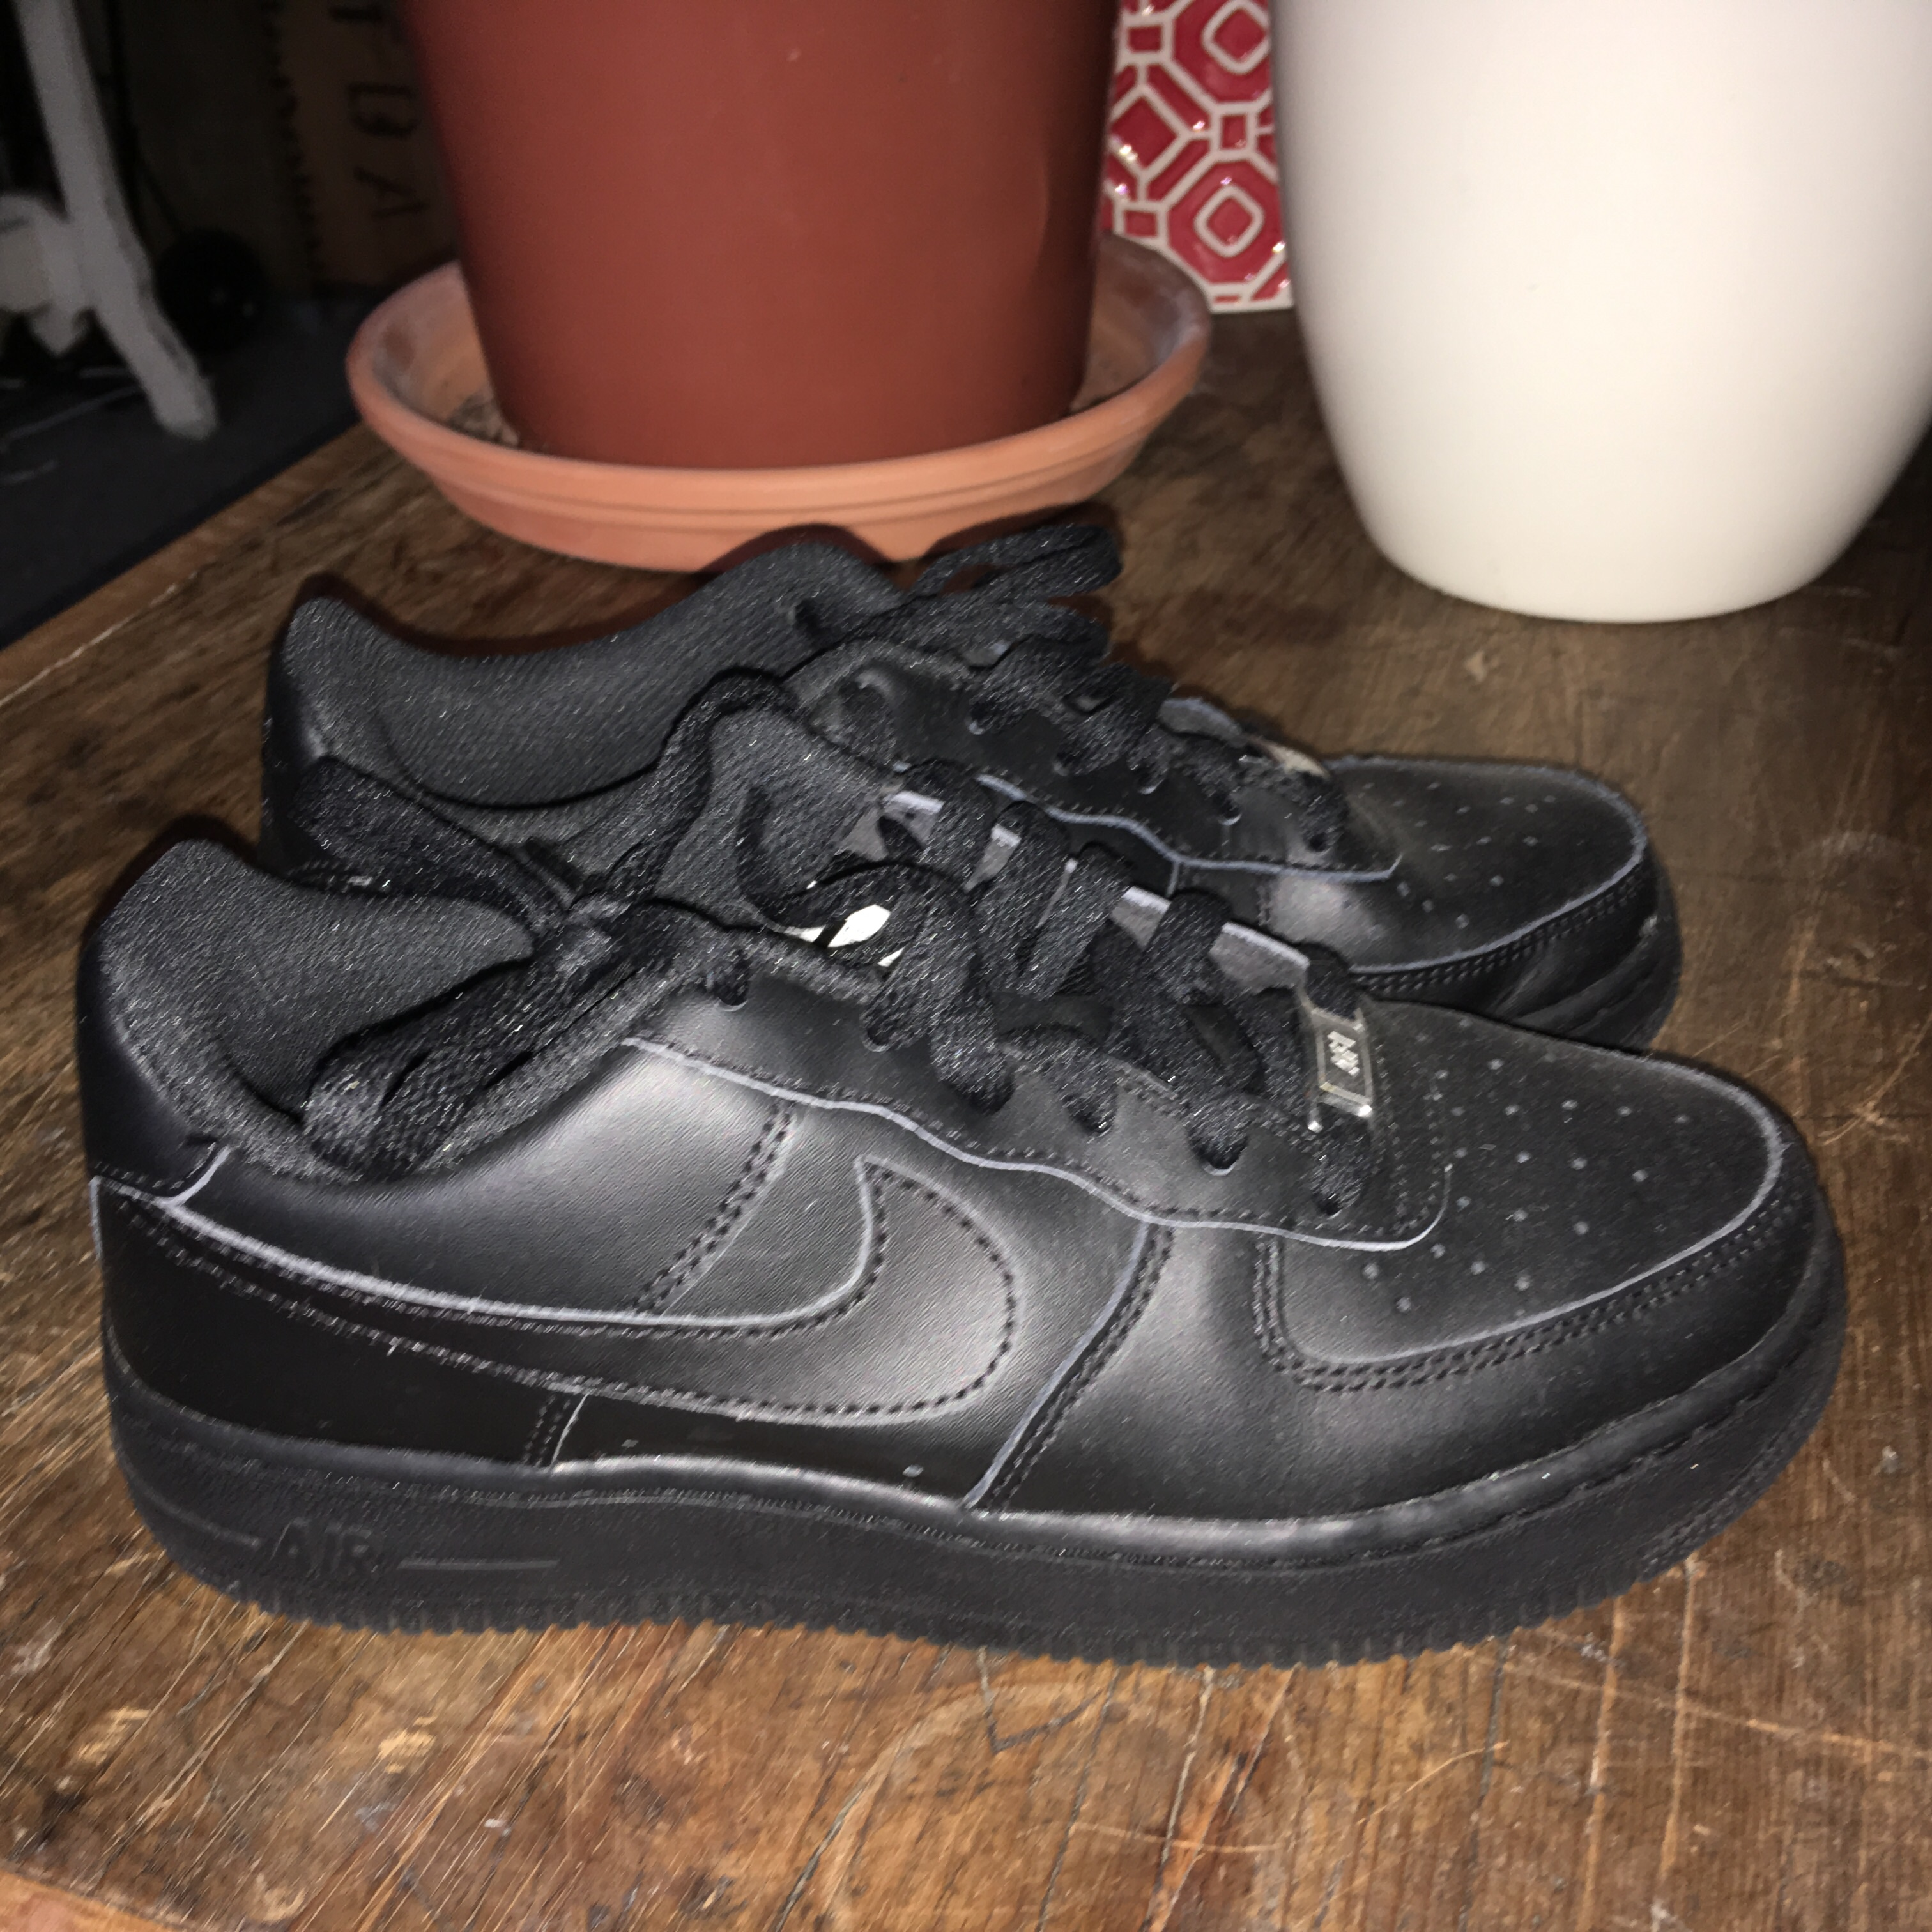 black air force 1 size 4 Shop Clothing